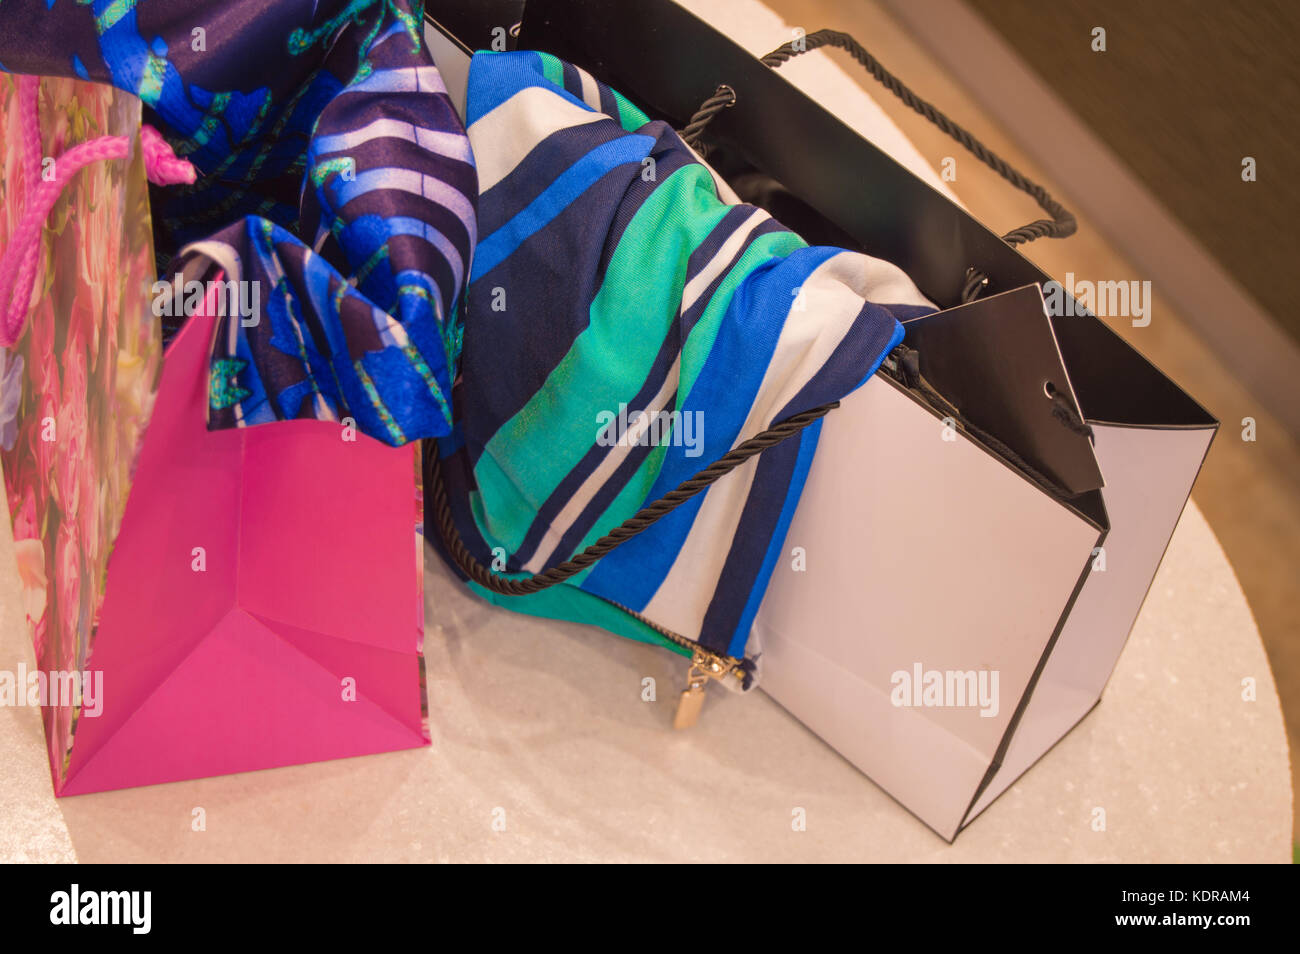 Paper shopping bags with fashionable clothes bought in the store. - Stock Image